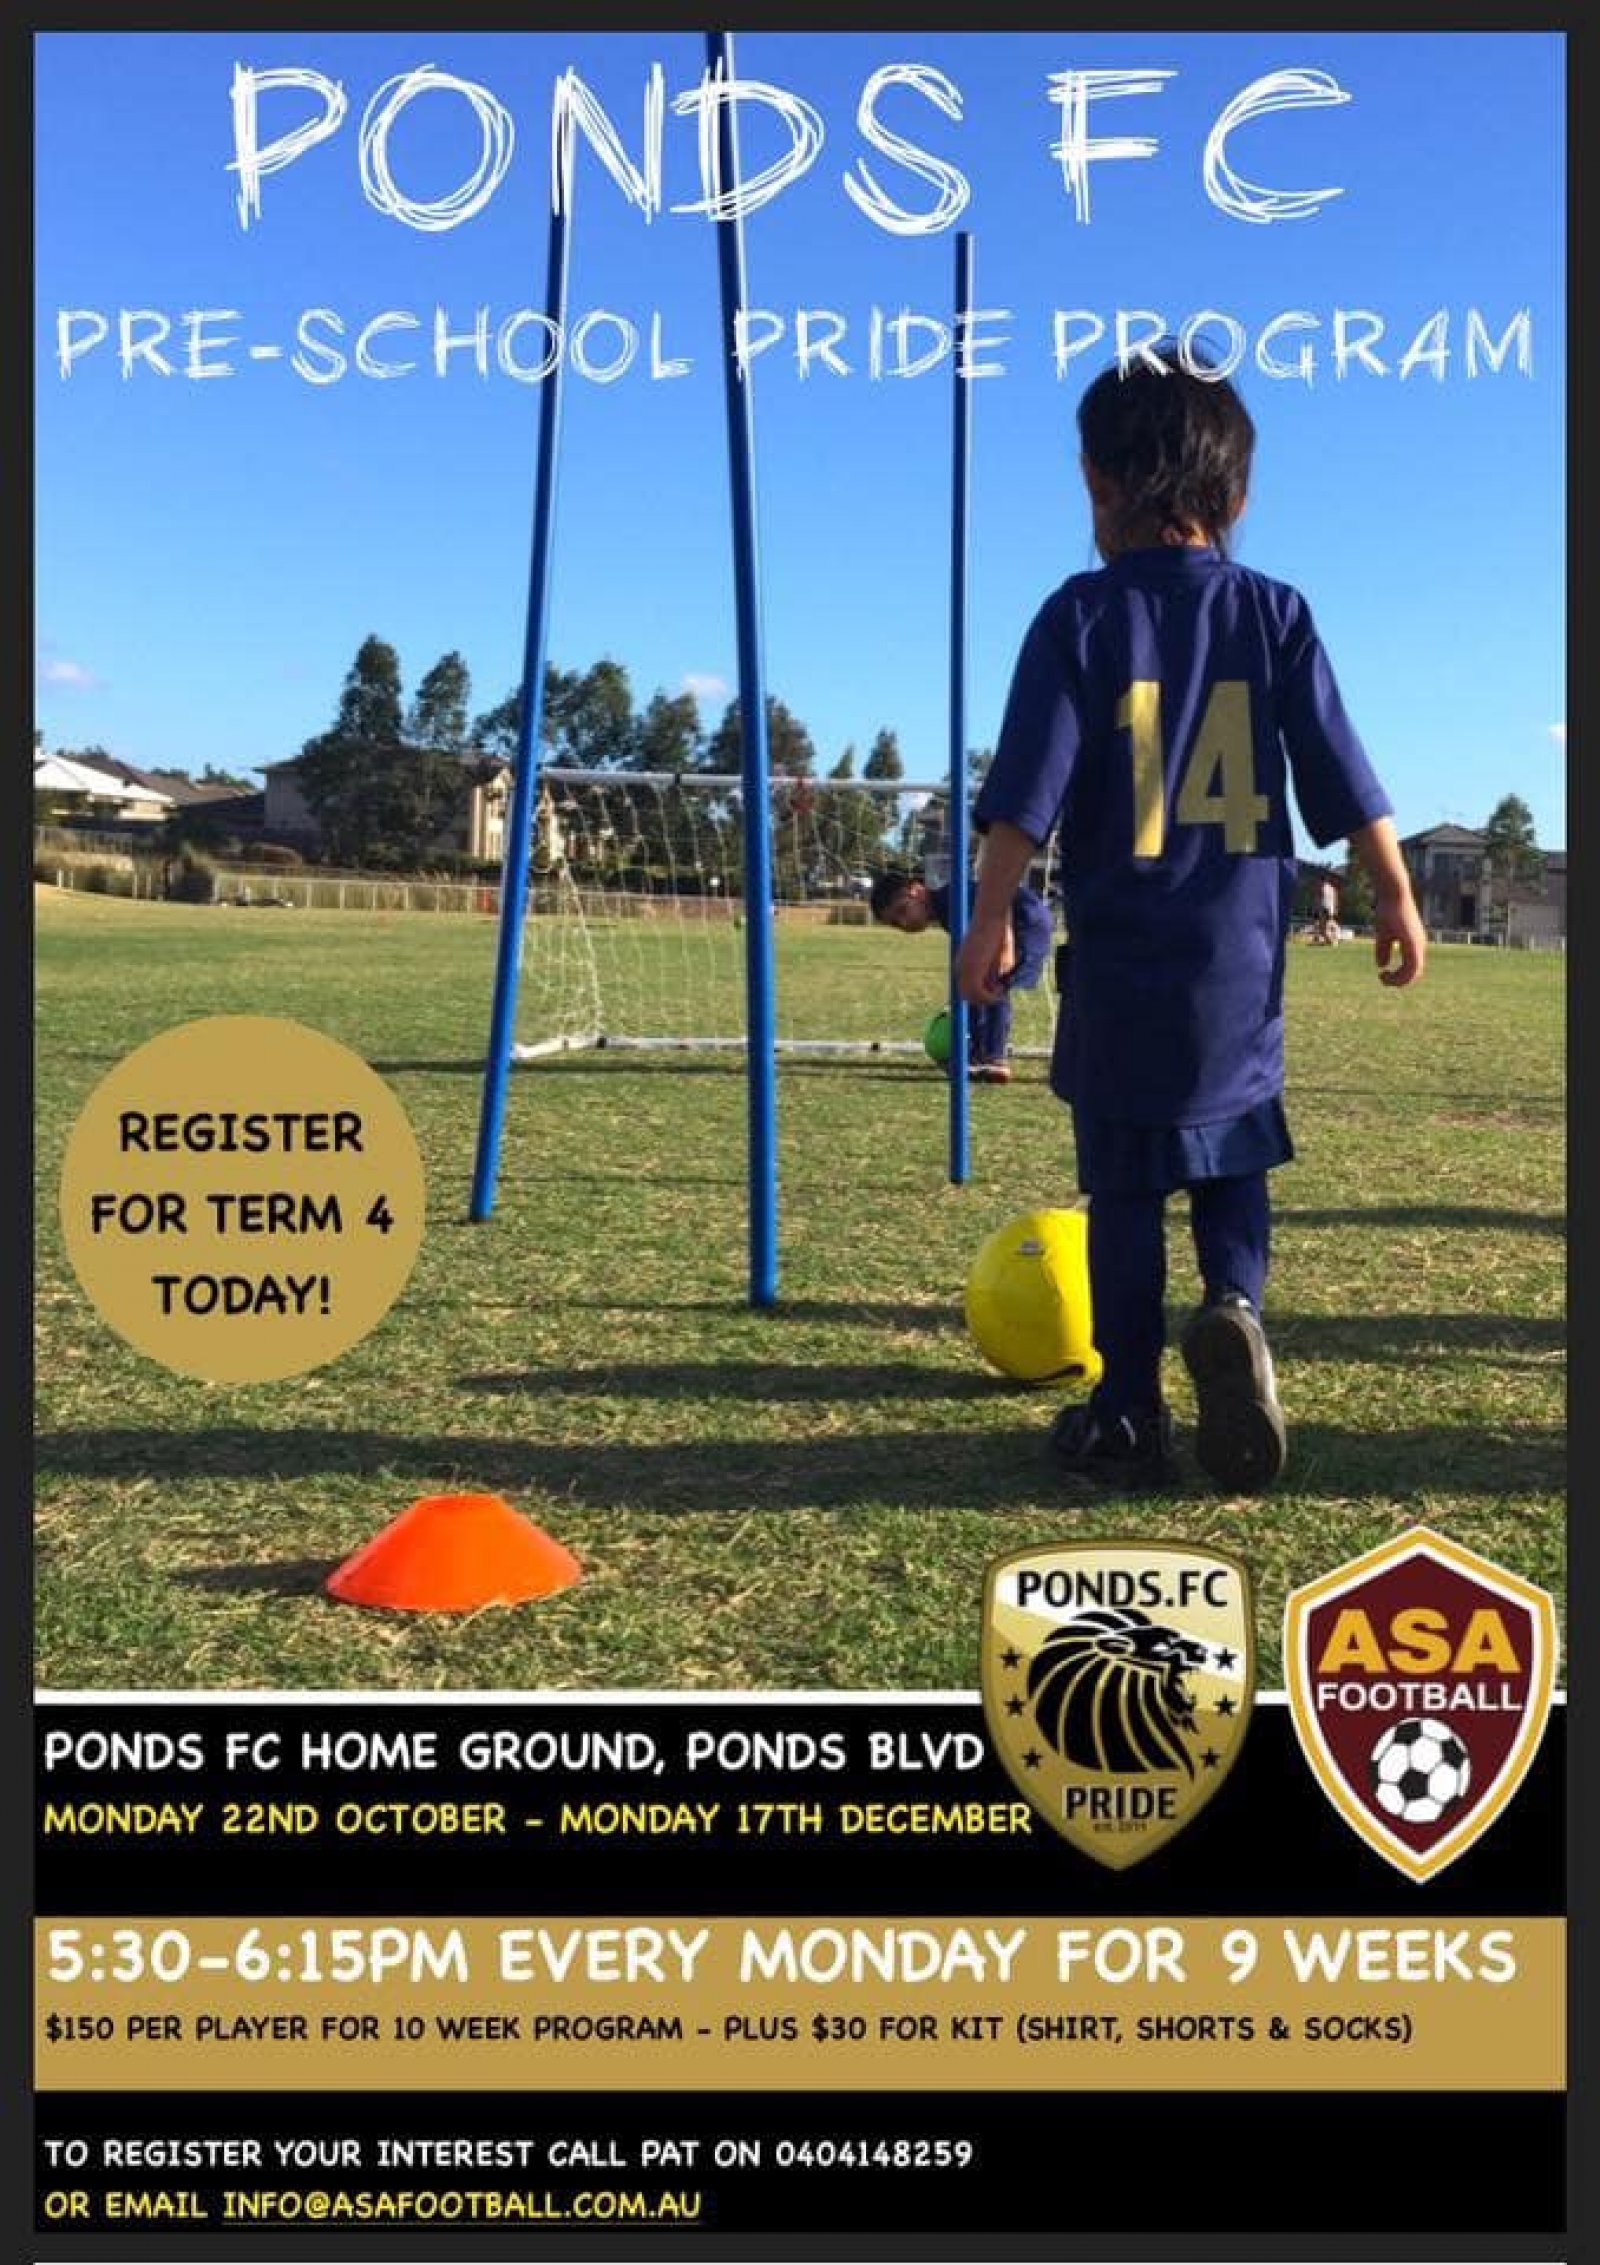 Preschool pride is back if you are interested call or email pat or rob